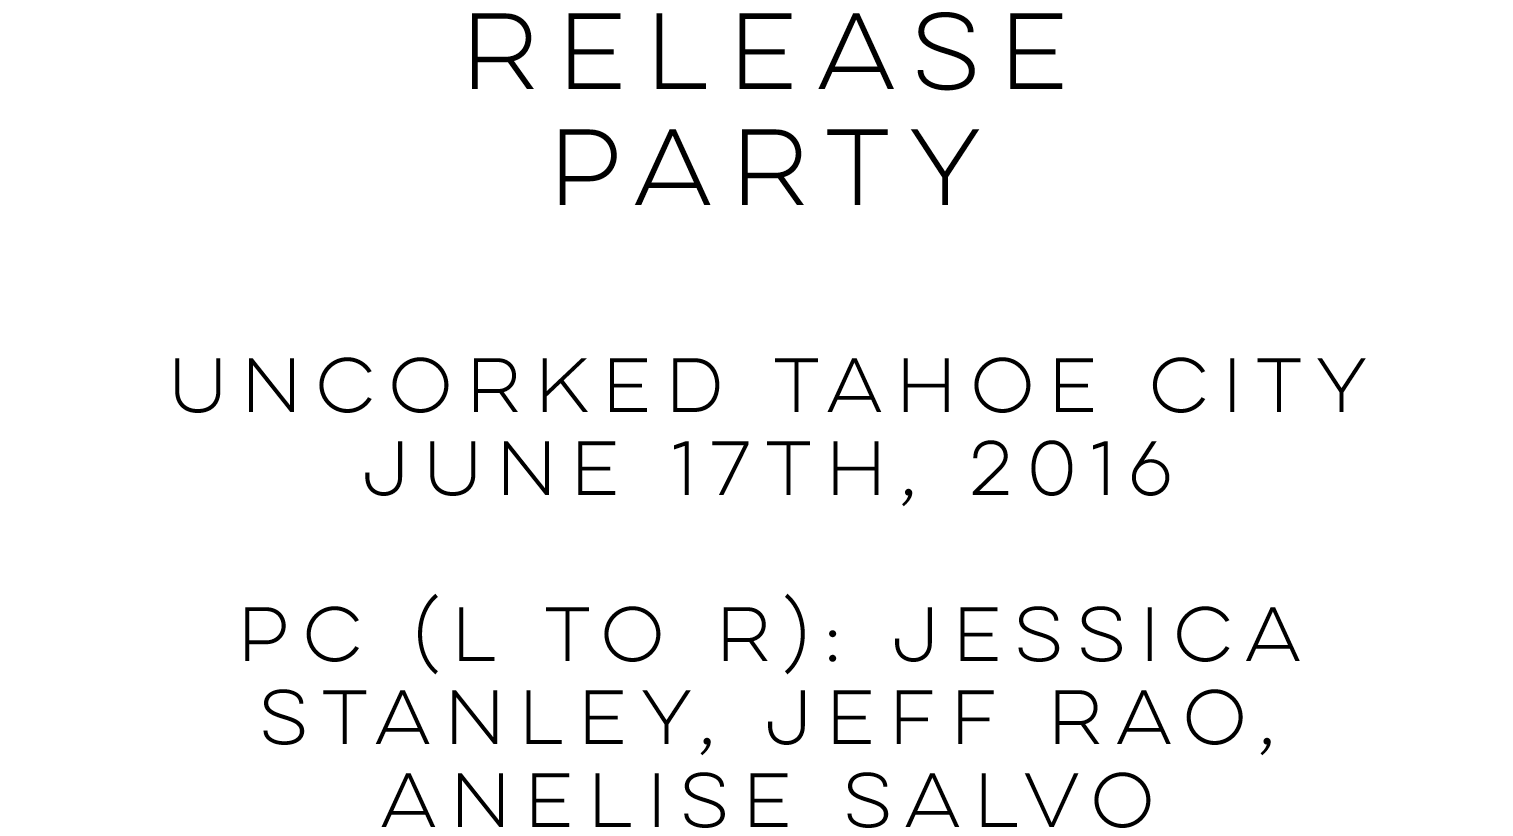 Release Party Tag.PNG